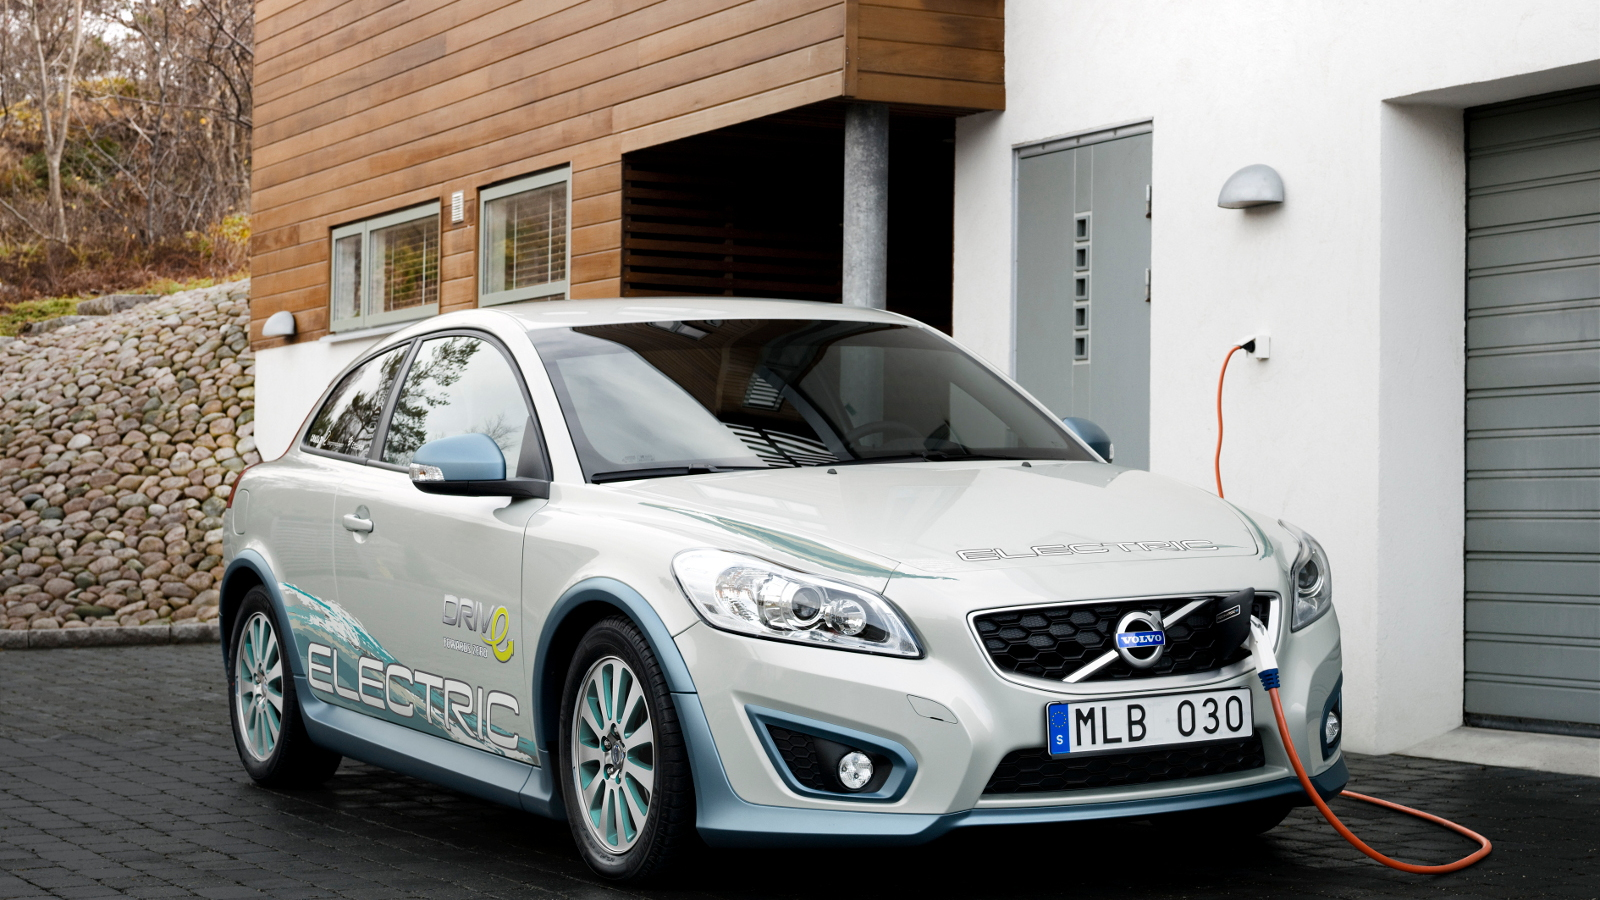 2010 Paris Auto Show: Volvo C30 DRIVe Electric